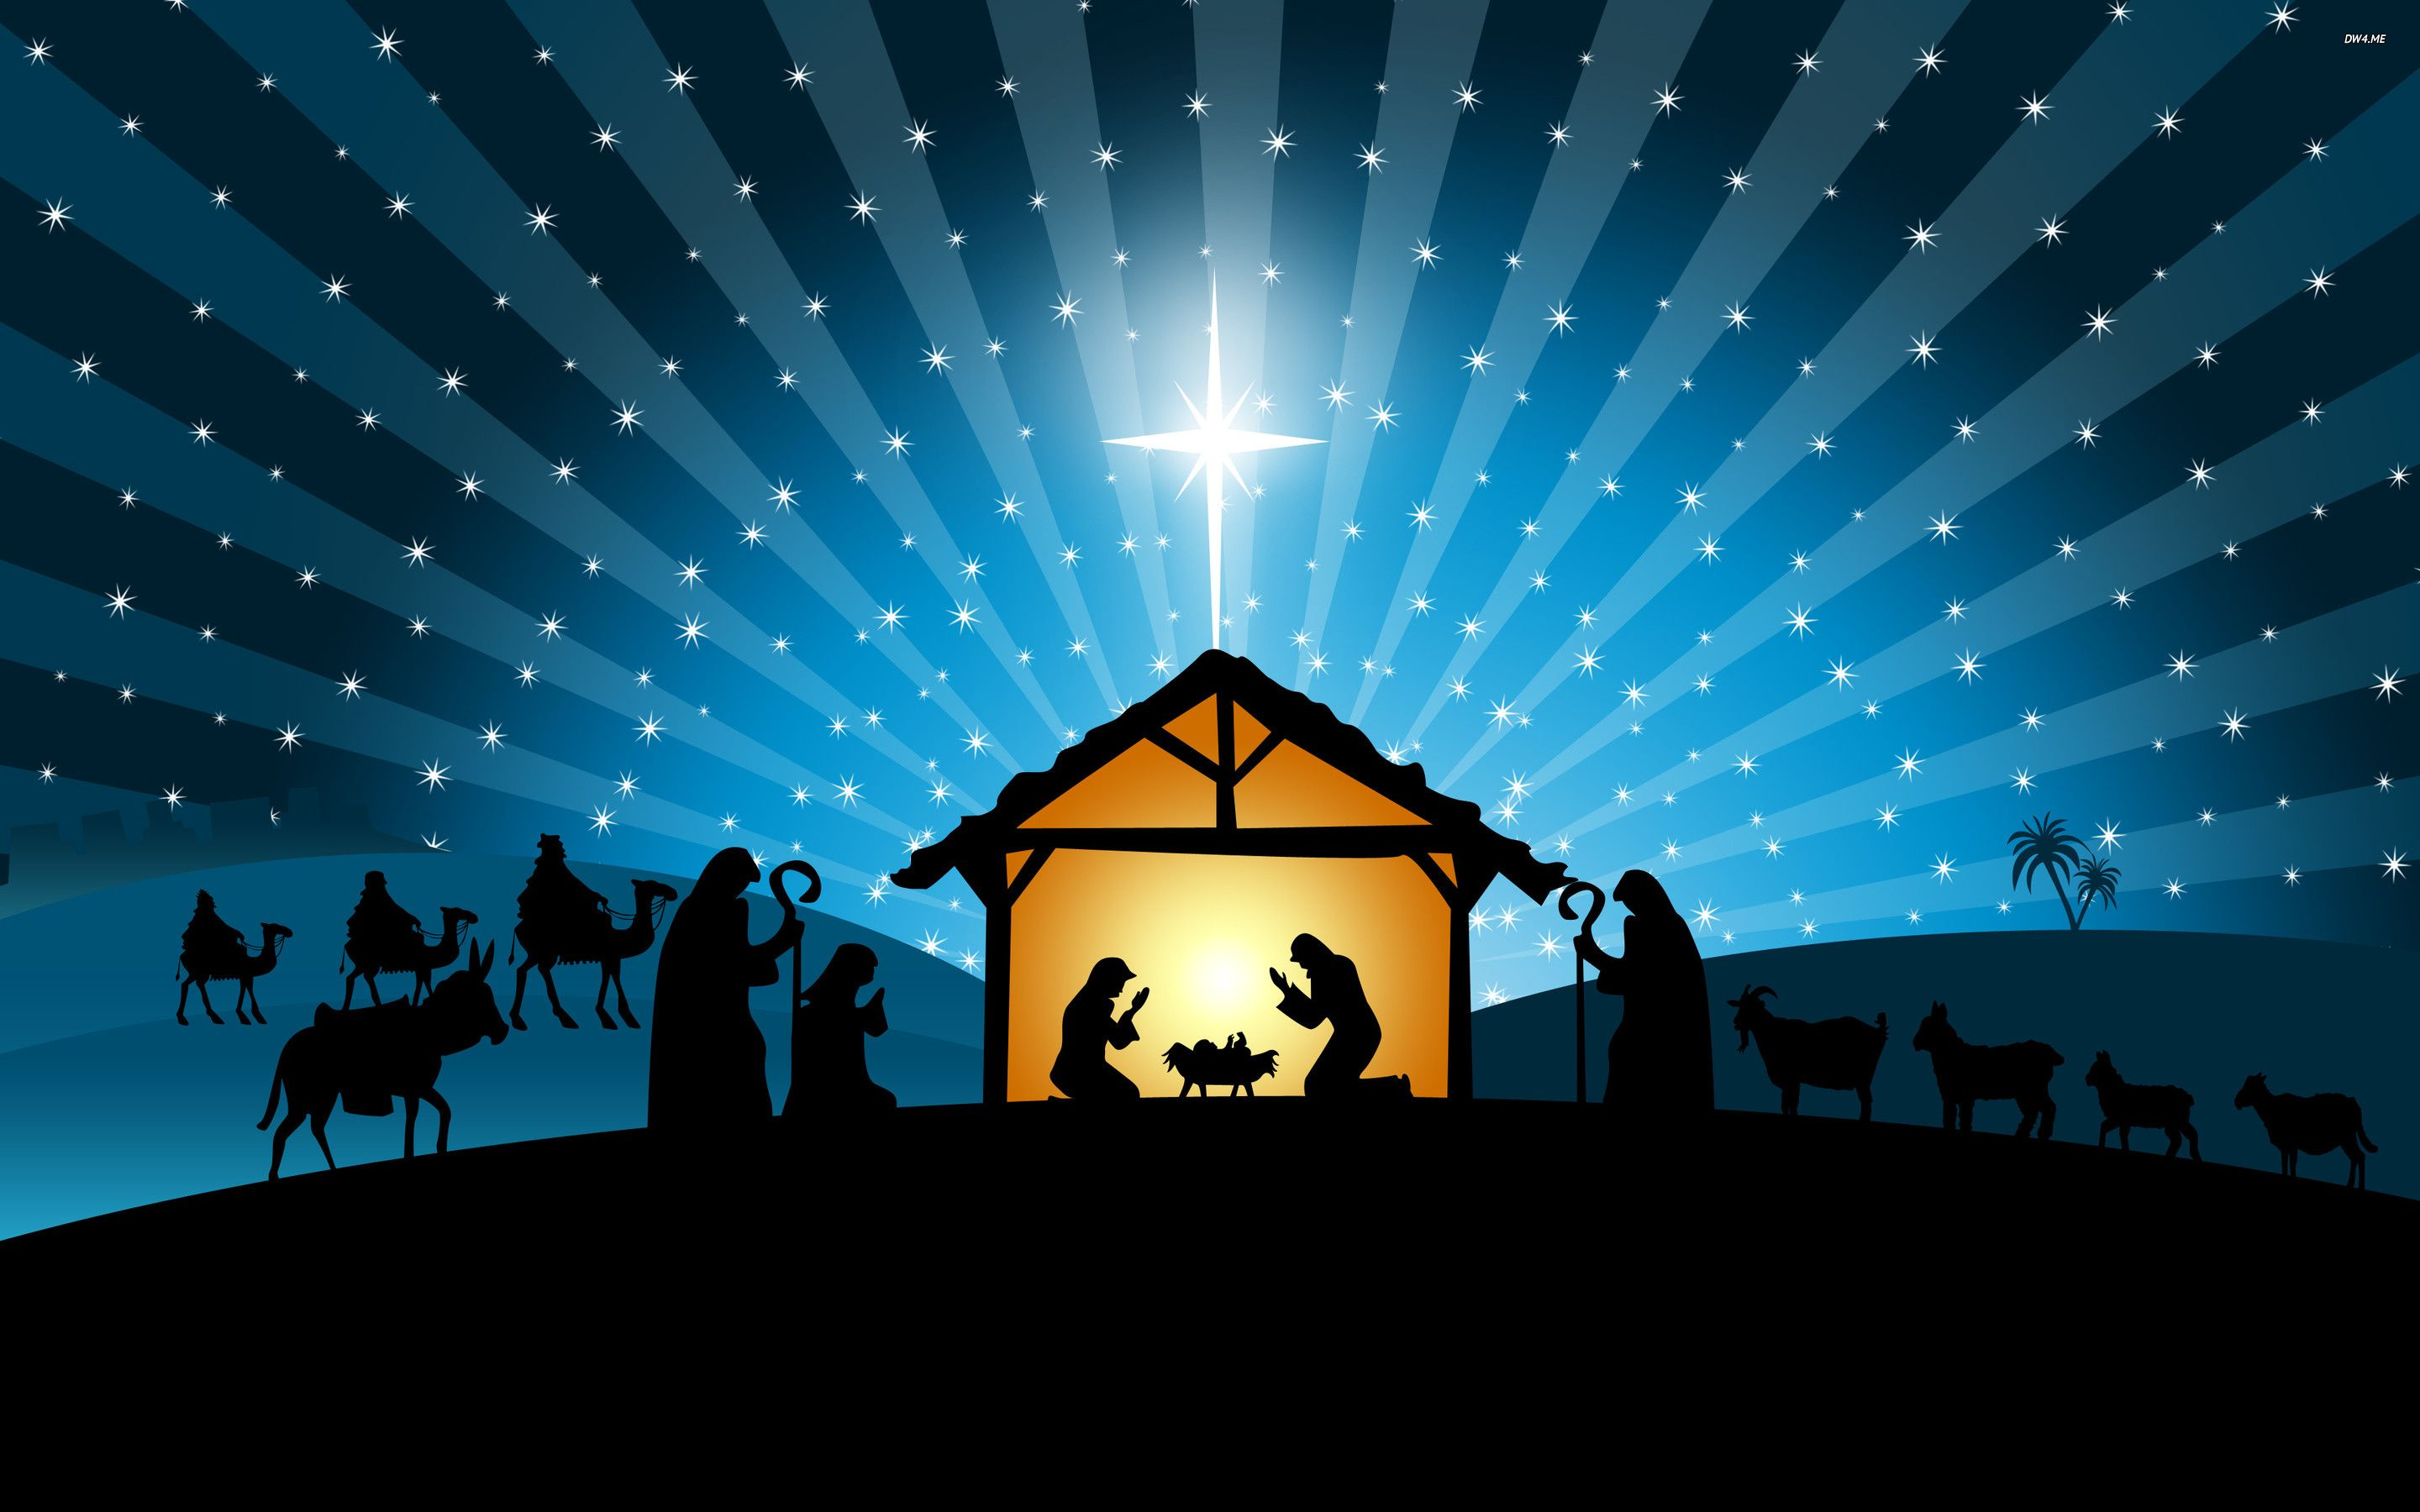 Christmas Manger Wallpapers - Top Free Christmas Manger Backgrounds -  WallpaperAccess